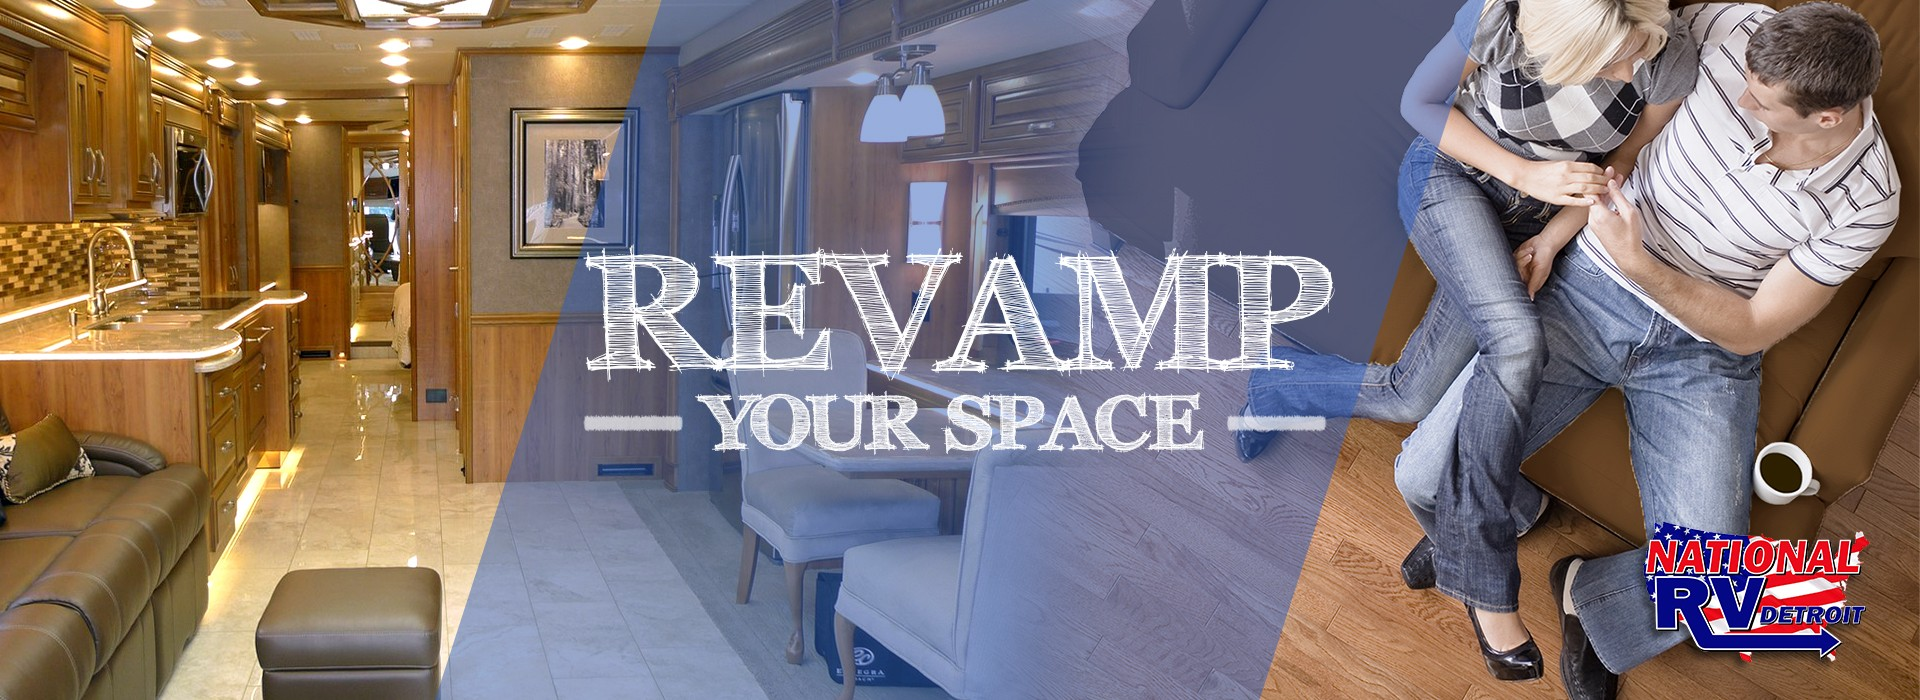 Revamp your space! Replace your RV flooring with peel and stick wood floors.